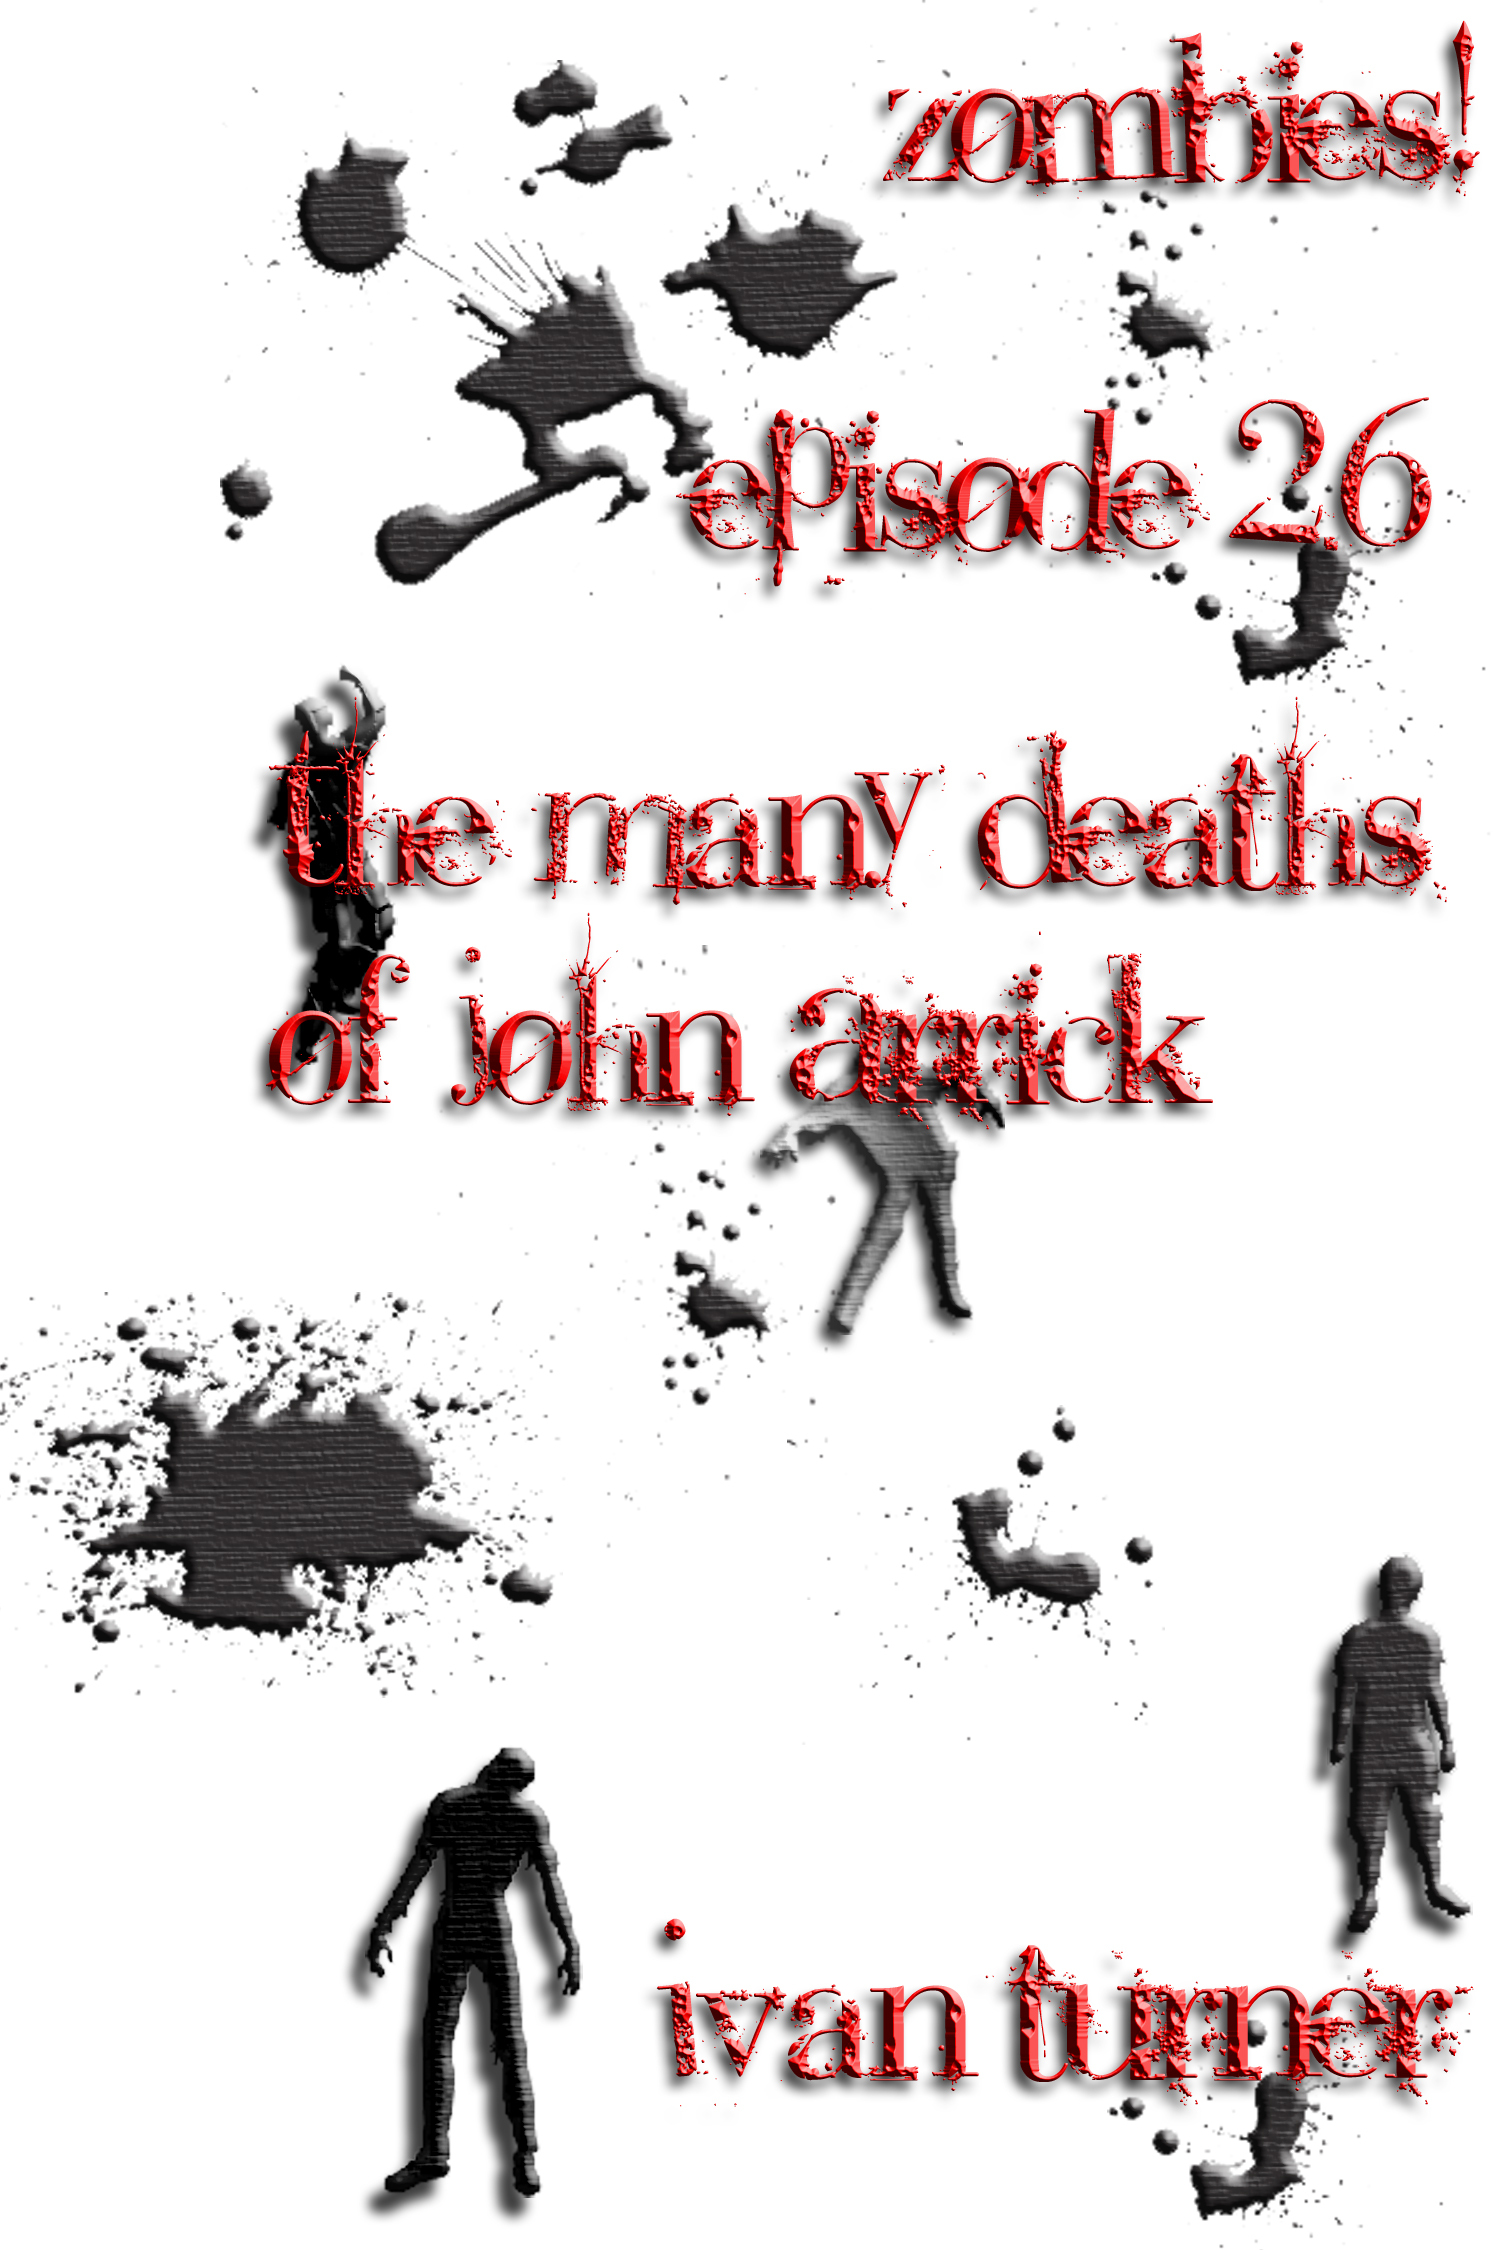 Zombies! Episode 2.6: The Many Deaths of John Arrick